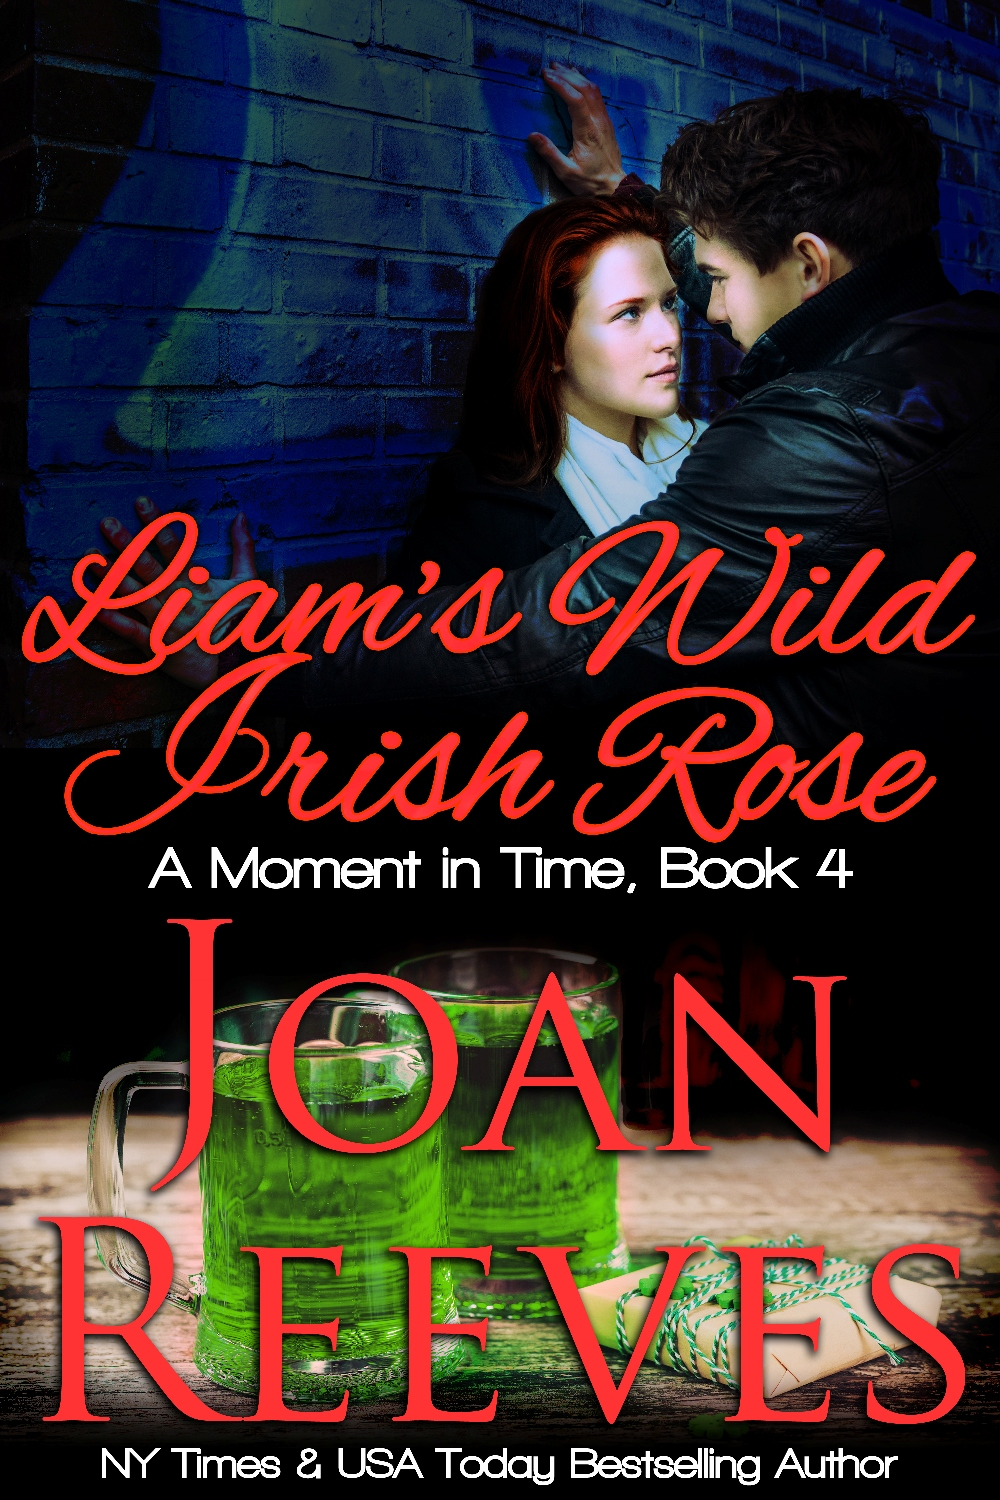 <b>Book 4, A Moment in Time</b>